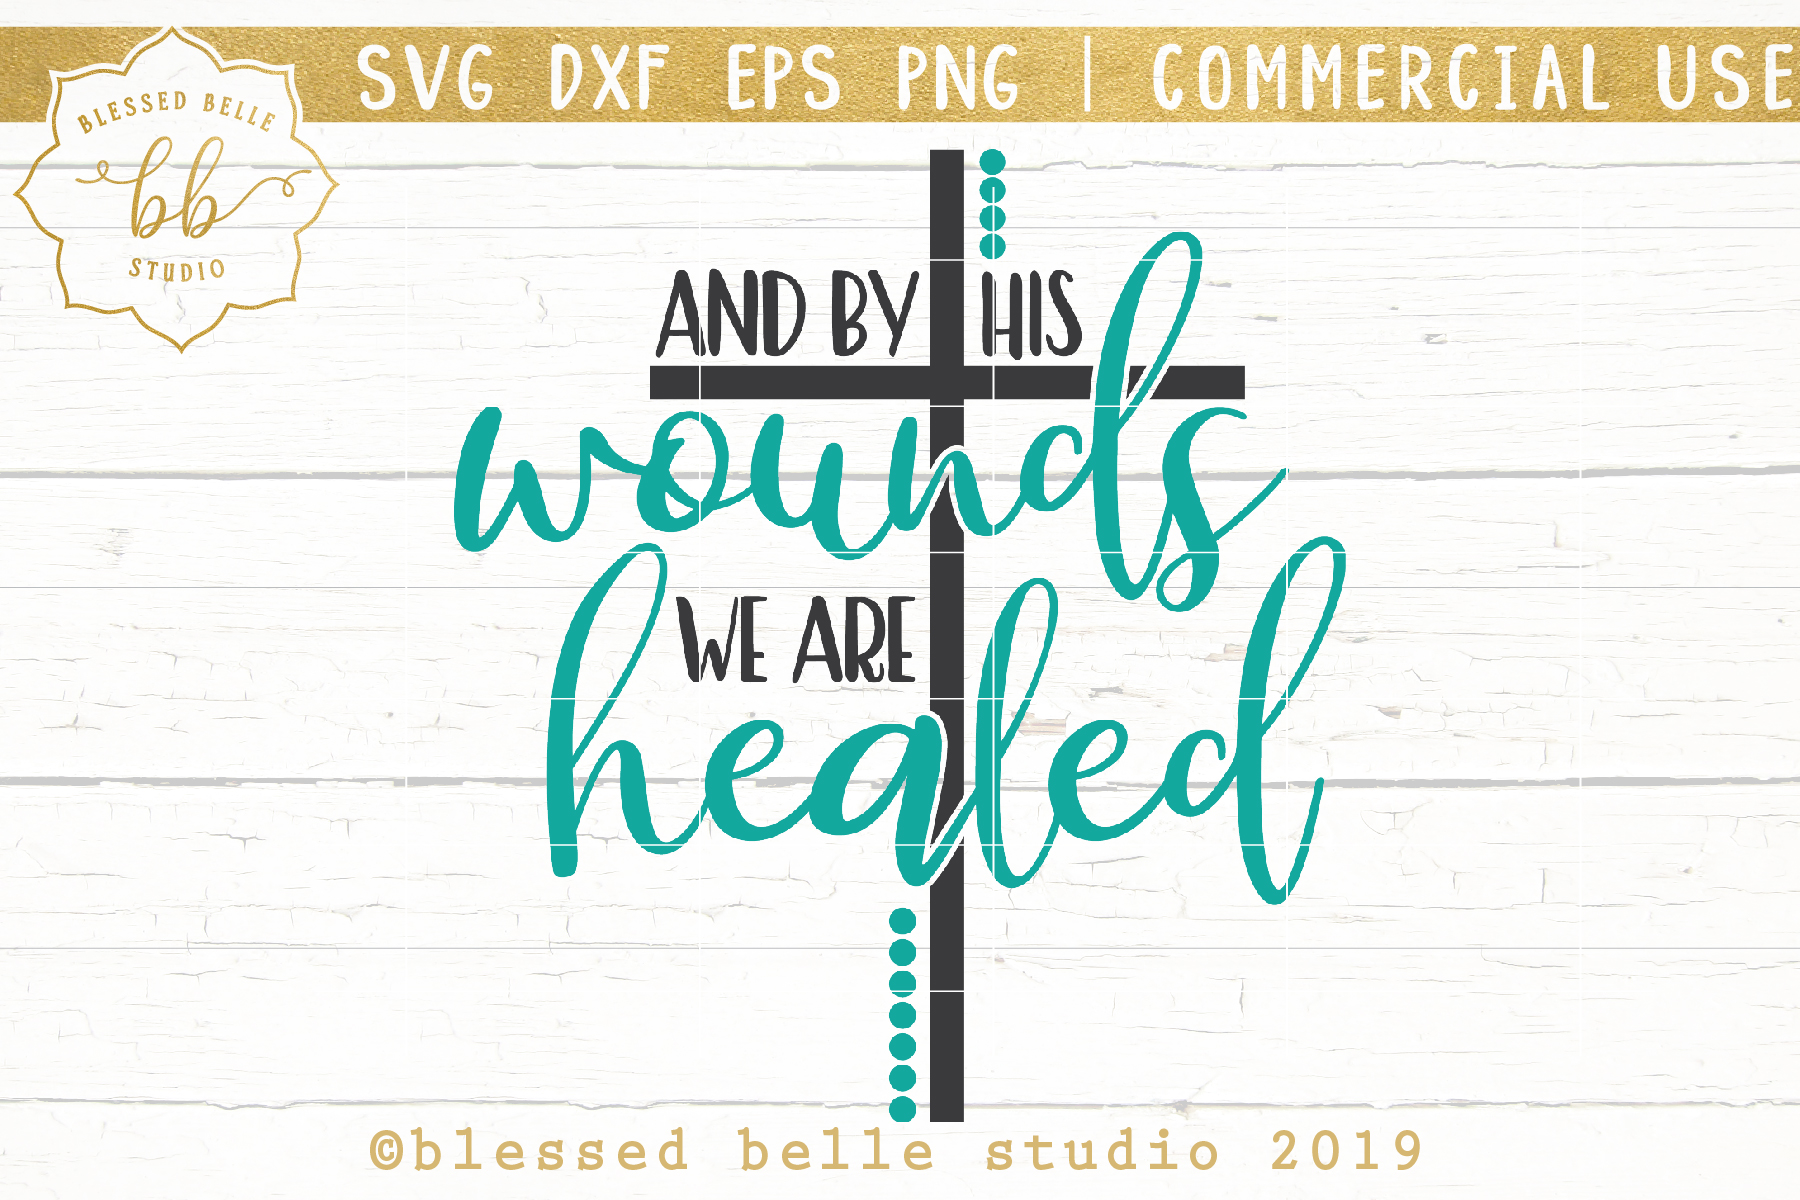 By His wounds we are healed / Easter SVG / SVG DXF EPS PNG example image 1